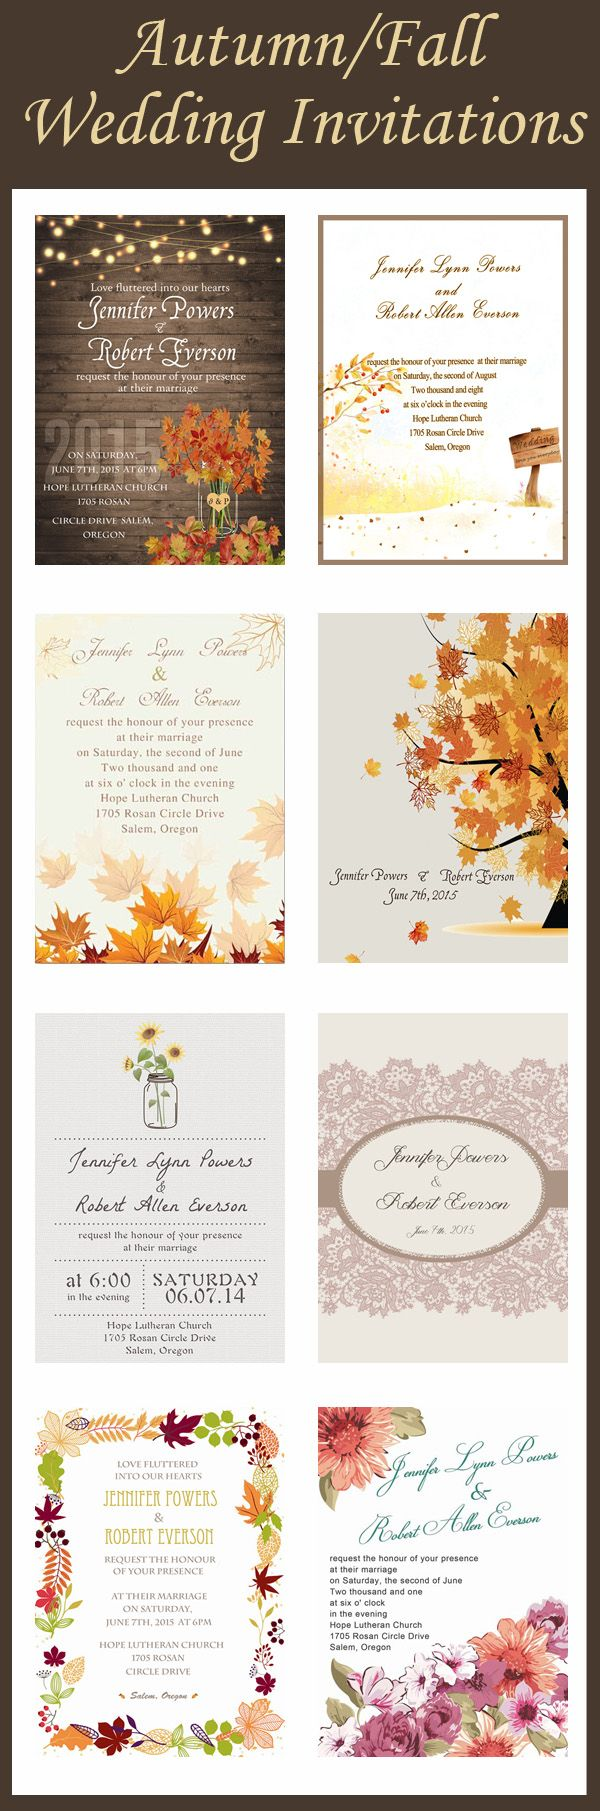 best 25 fall wedding invitations ideas on pinterest autumn wedding ideas october fall wedding colors and maroon wedding colors - Fall Themed Wedding Invitations